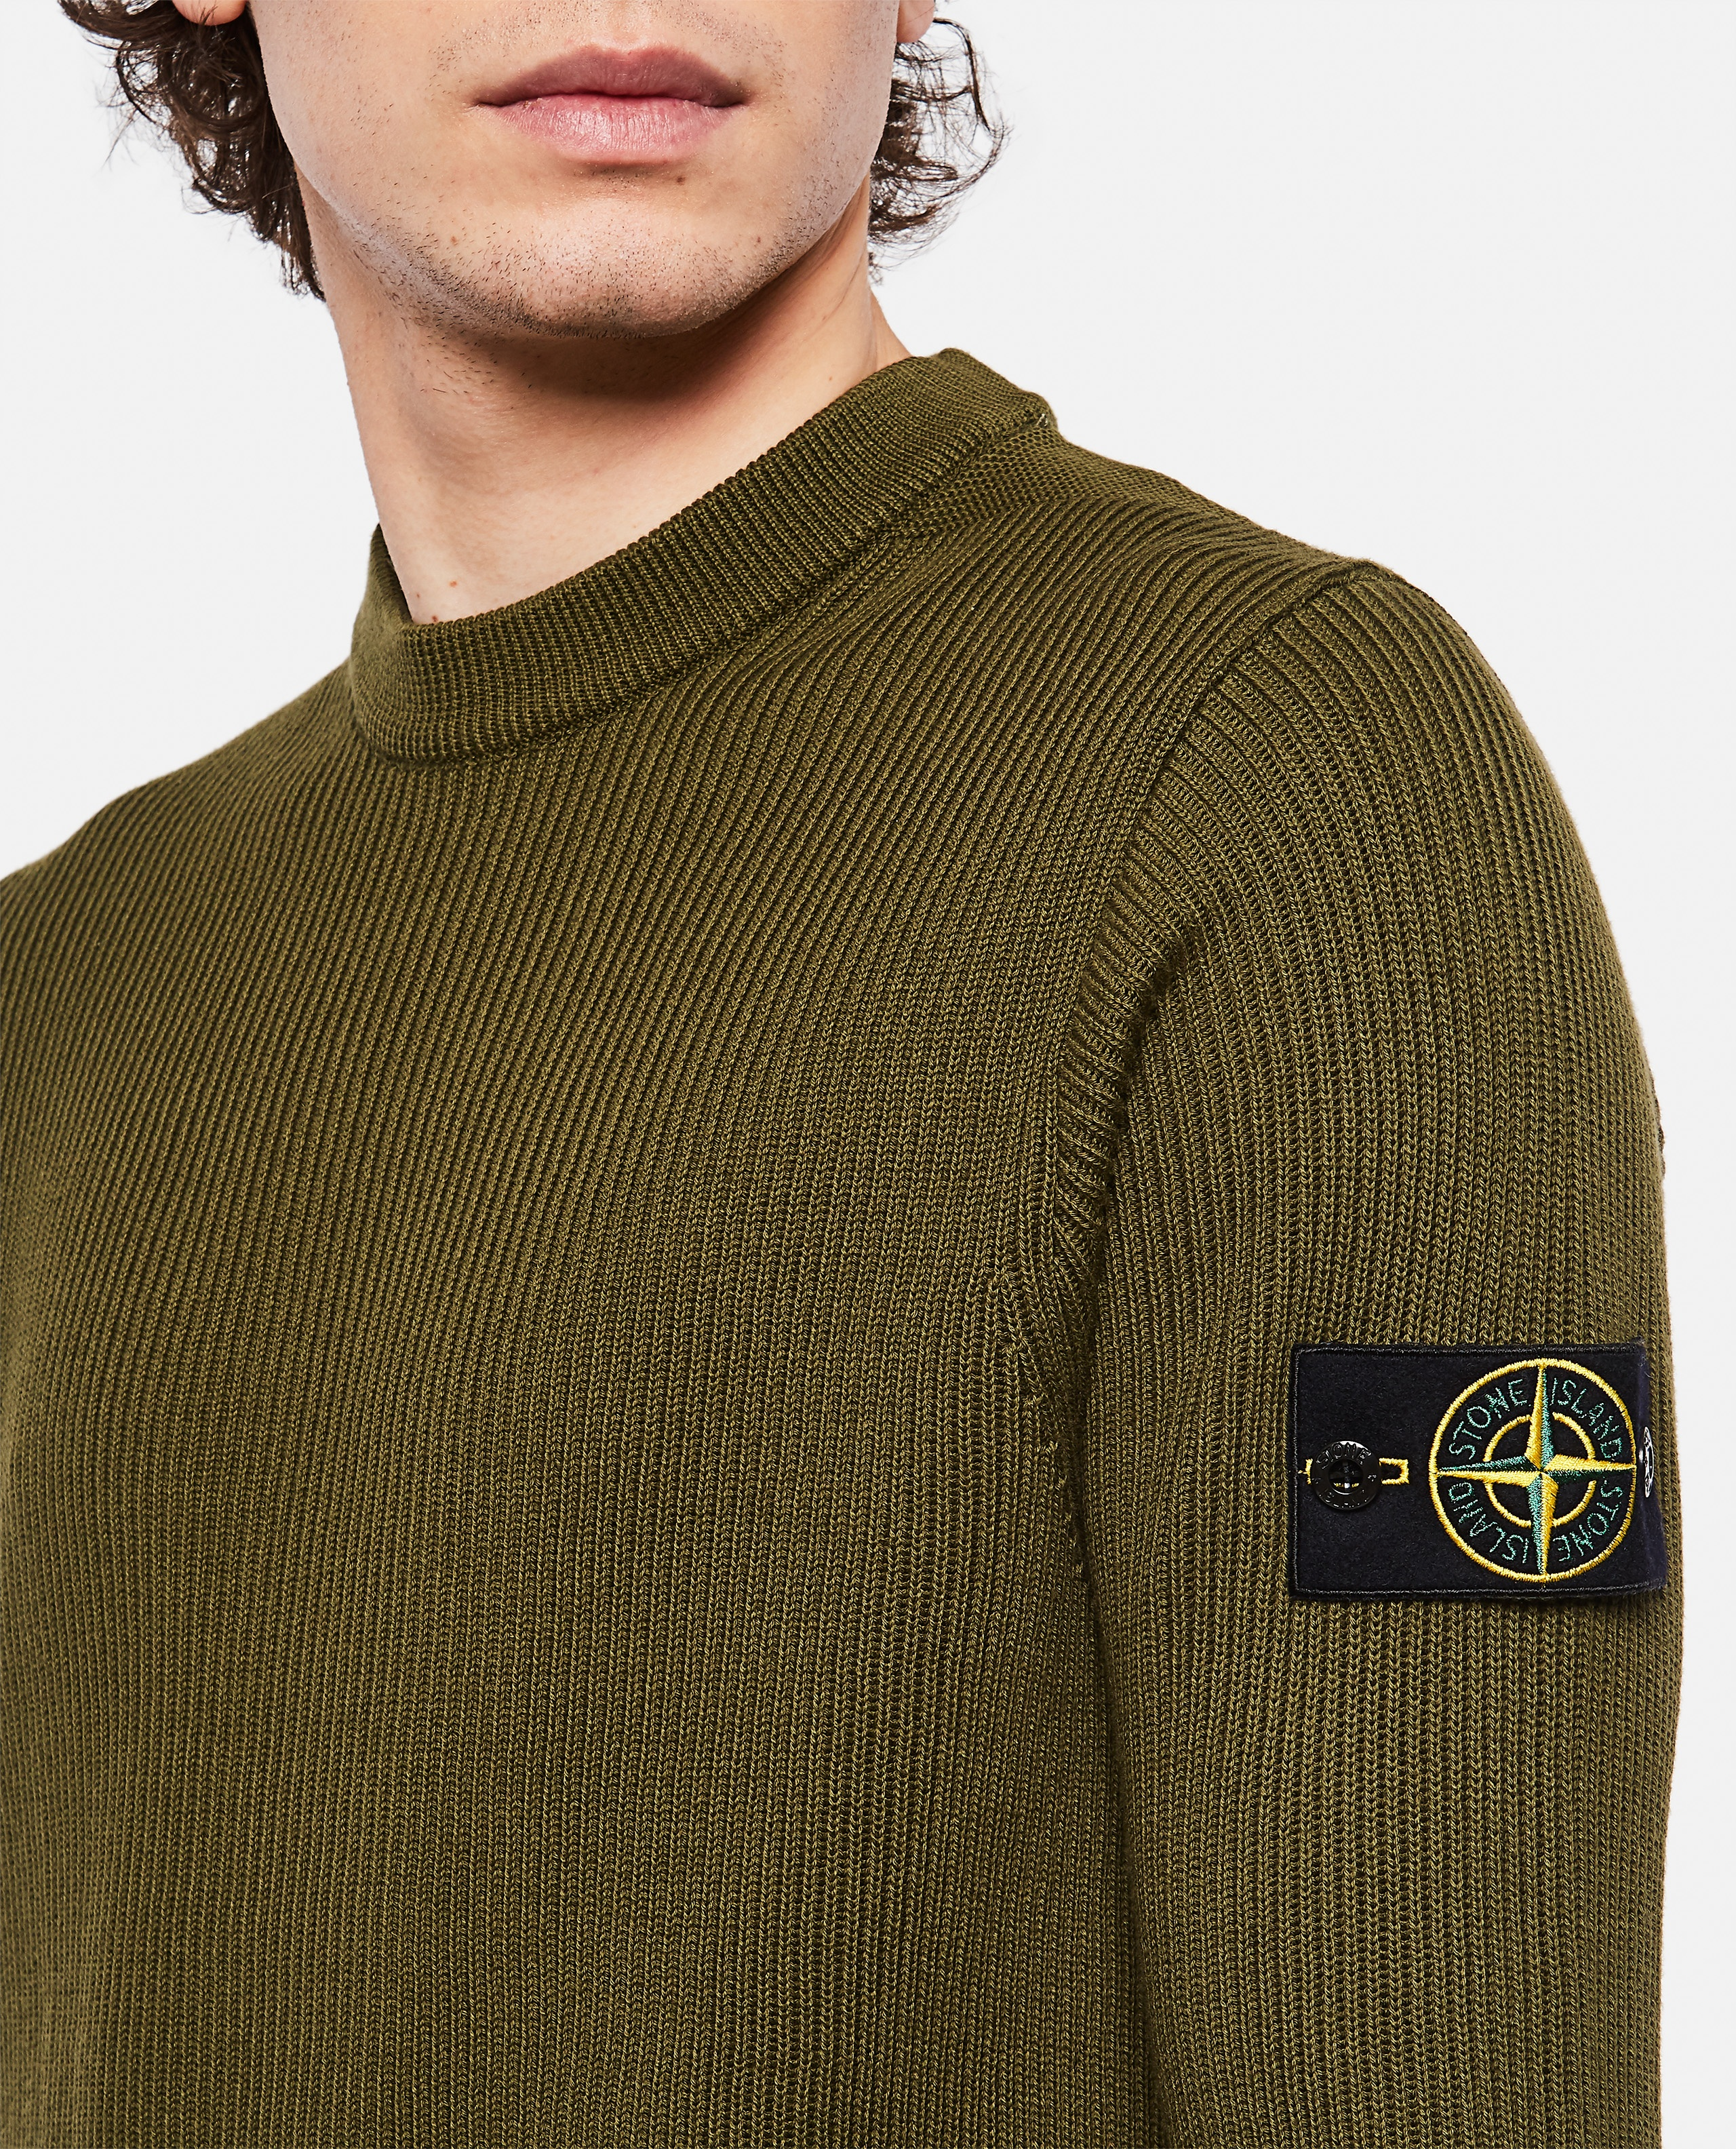 Sweater with logo patch Men Stone Island 000292760043119 4